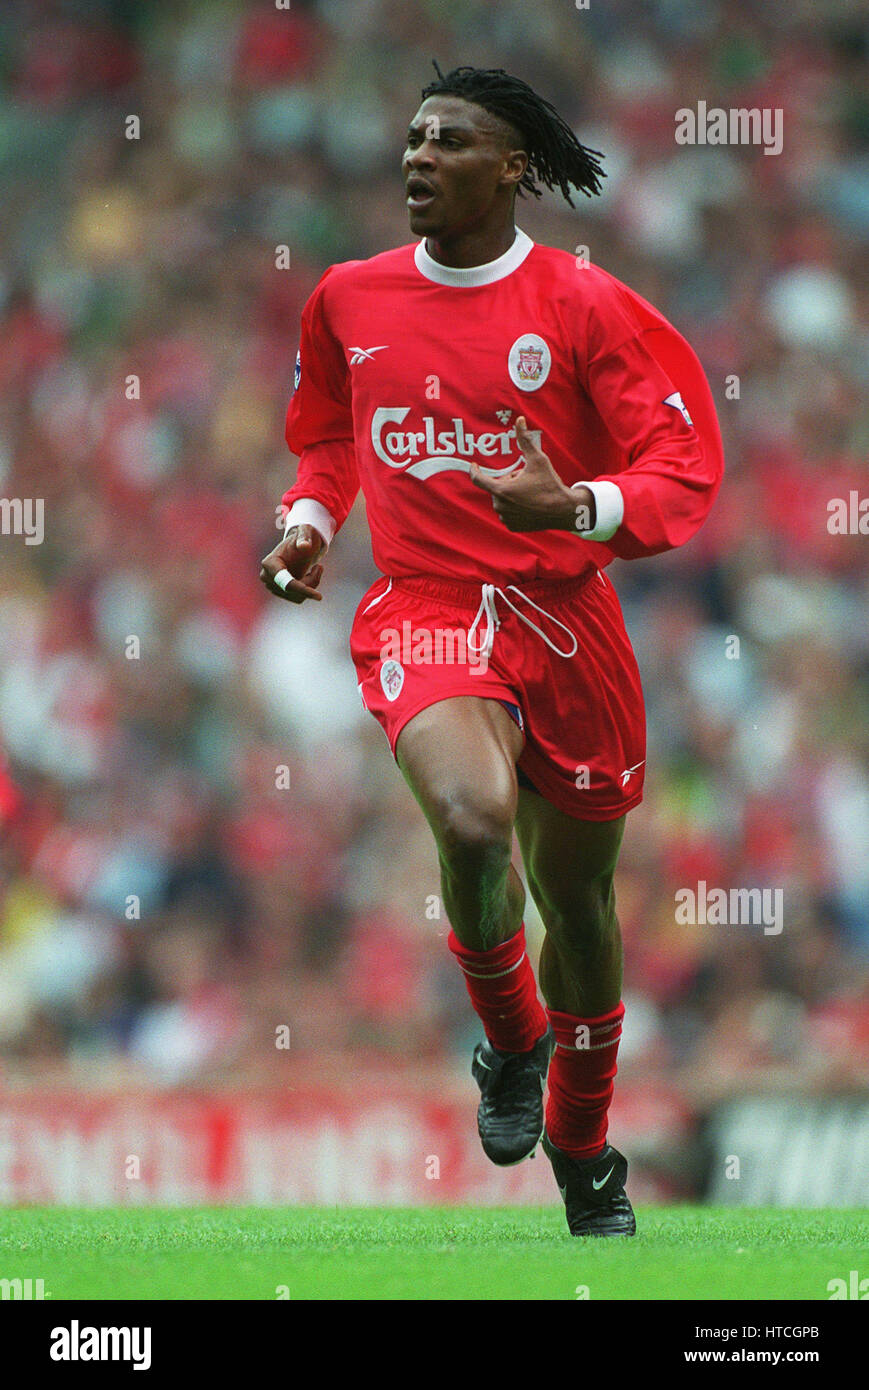 RIGOBERT SONG LIVERPOOL FC 11 September 1999 - Stock Image